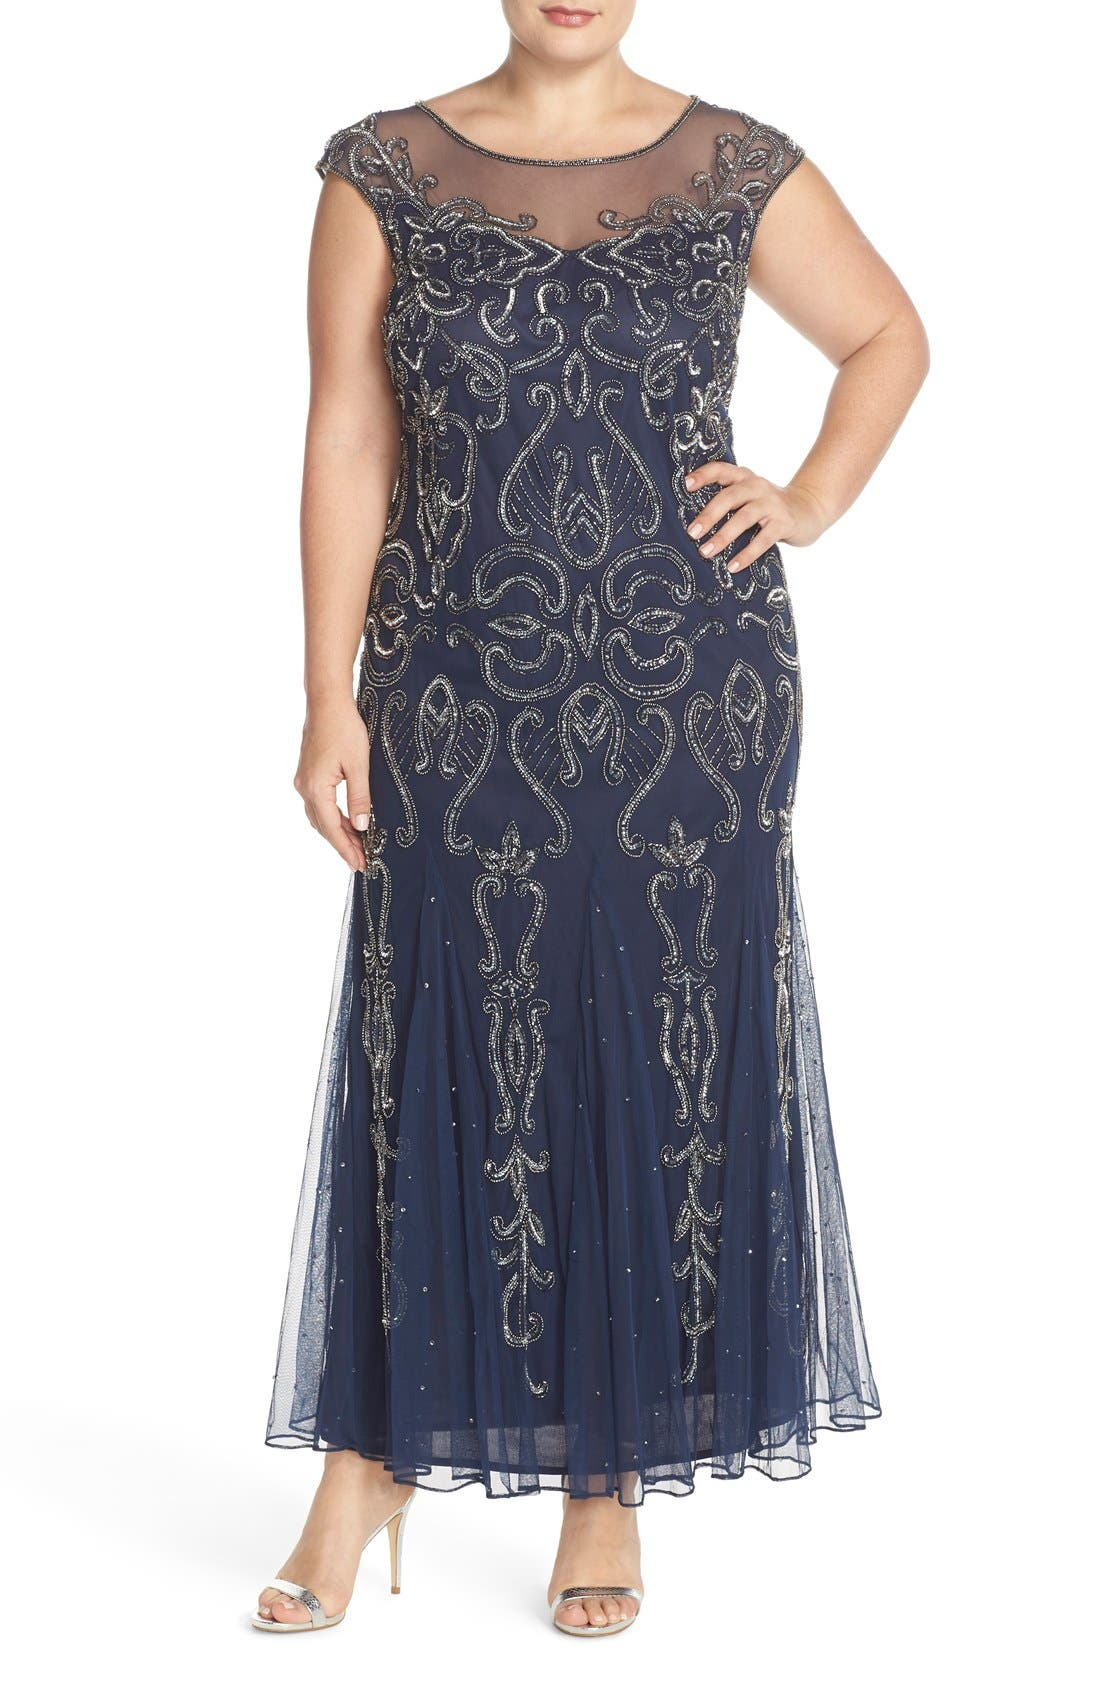 Alternate Image 1 Selected - Pisarro Nights Illusion Neck Beaded A-Line Gown (Plus Size)